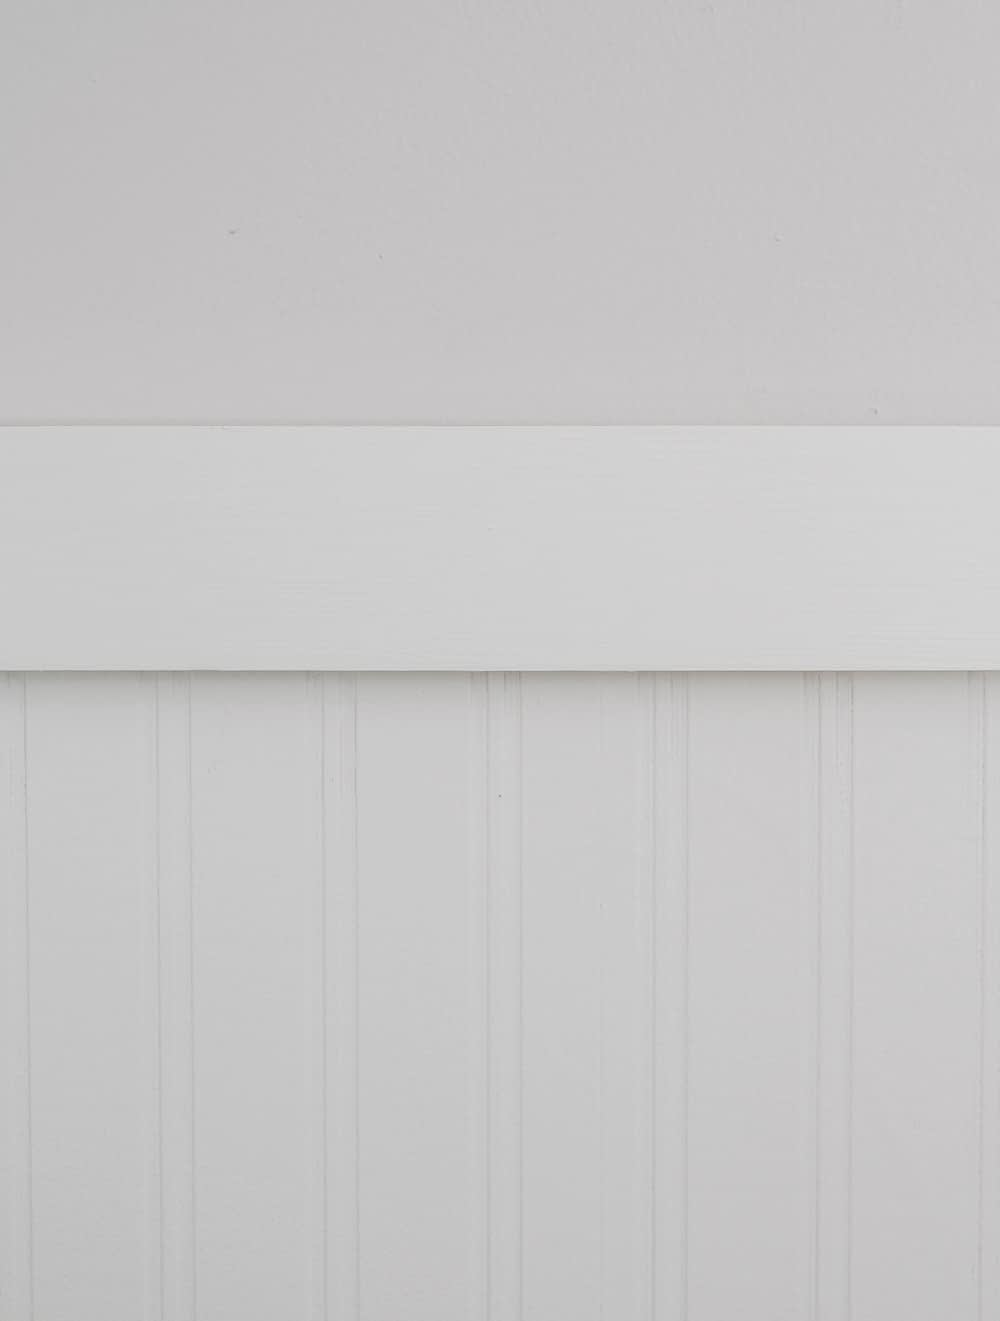 Closeup of white trim separating a light grey wall and white beadboard wallpaper